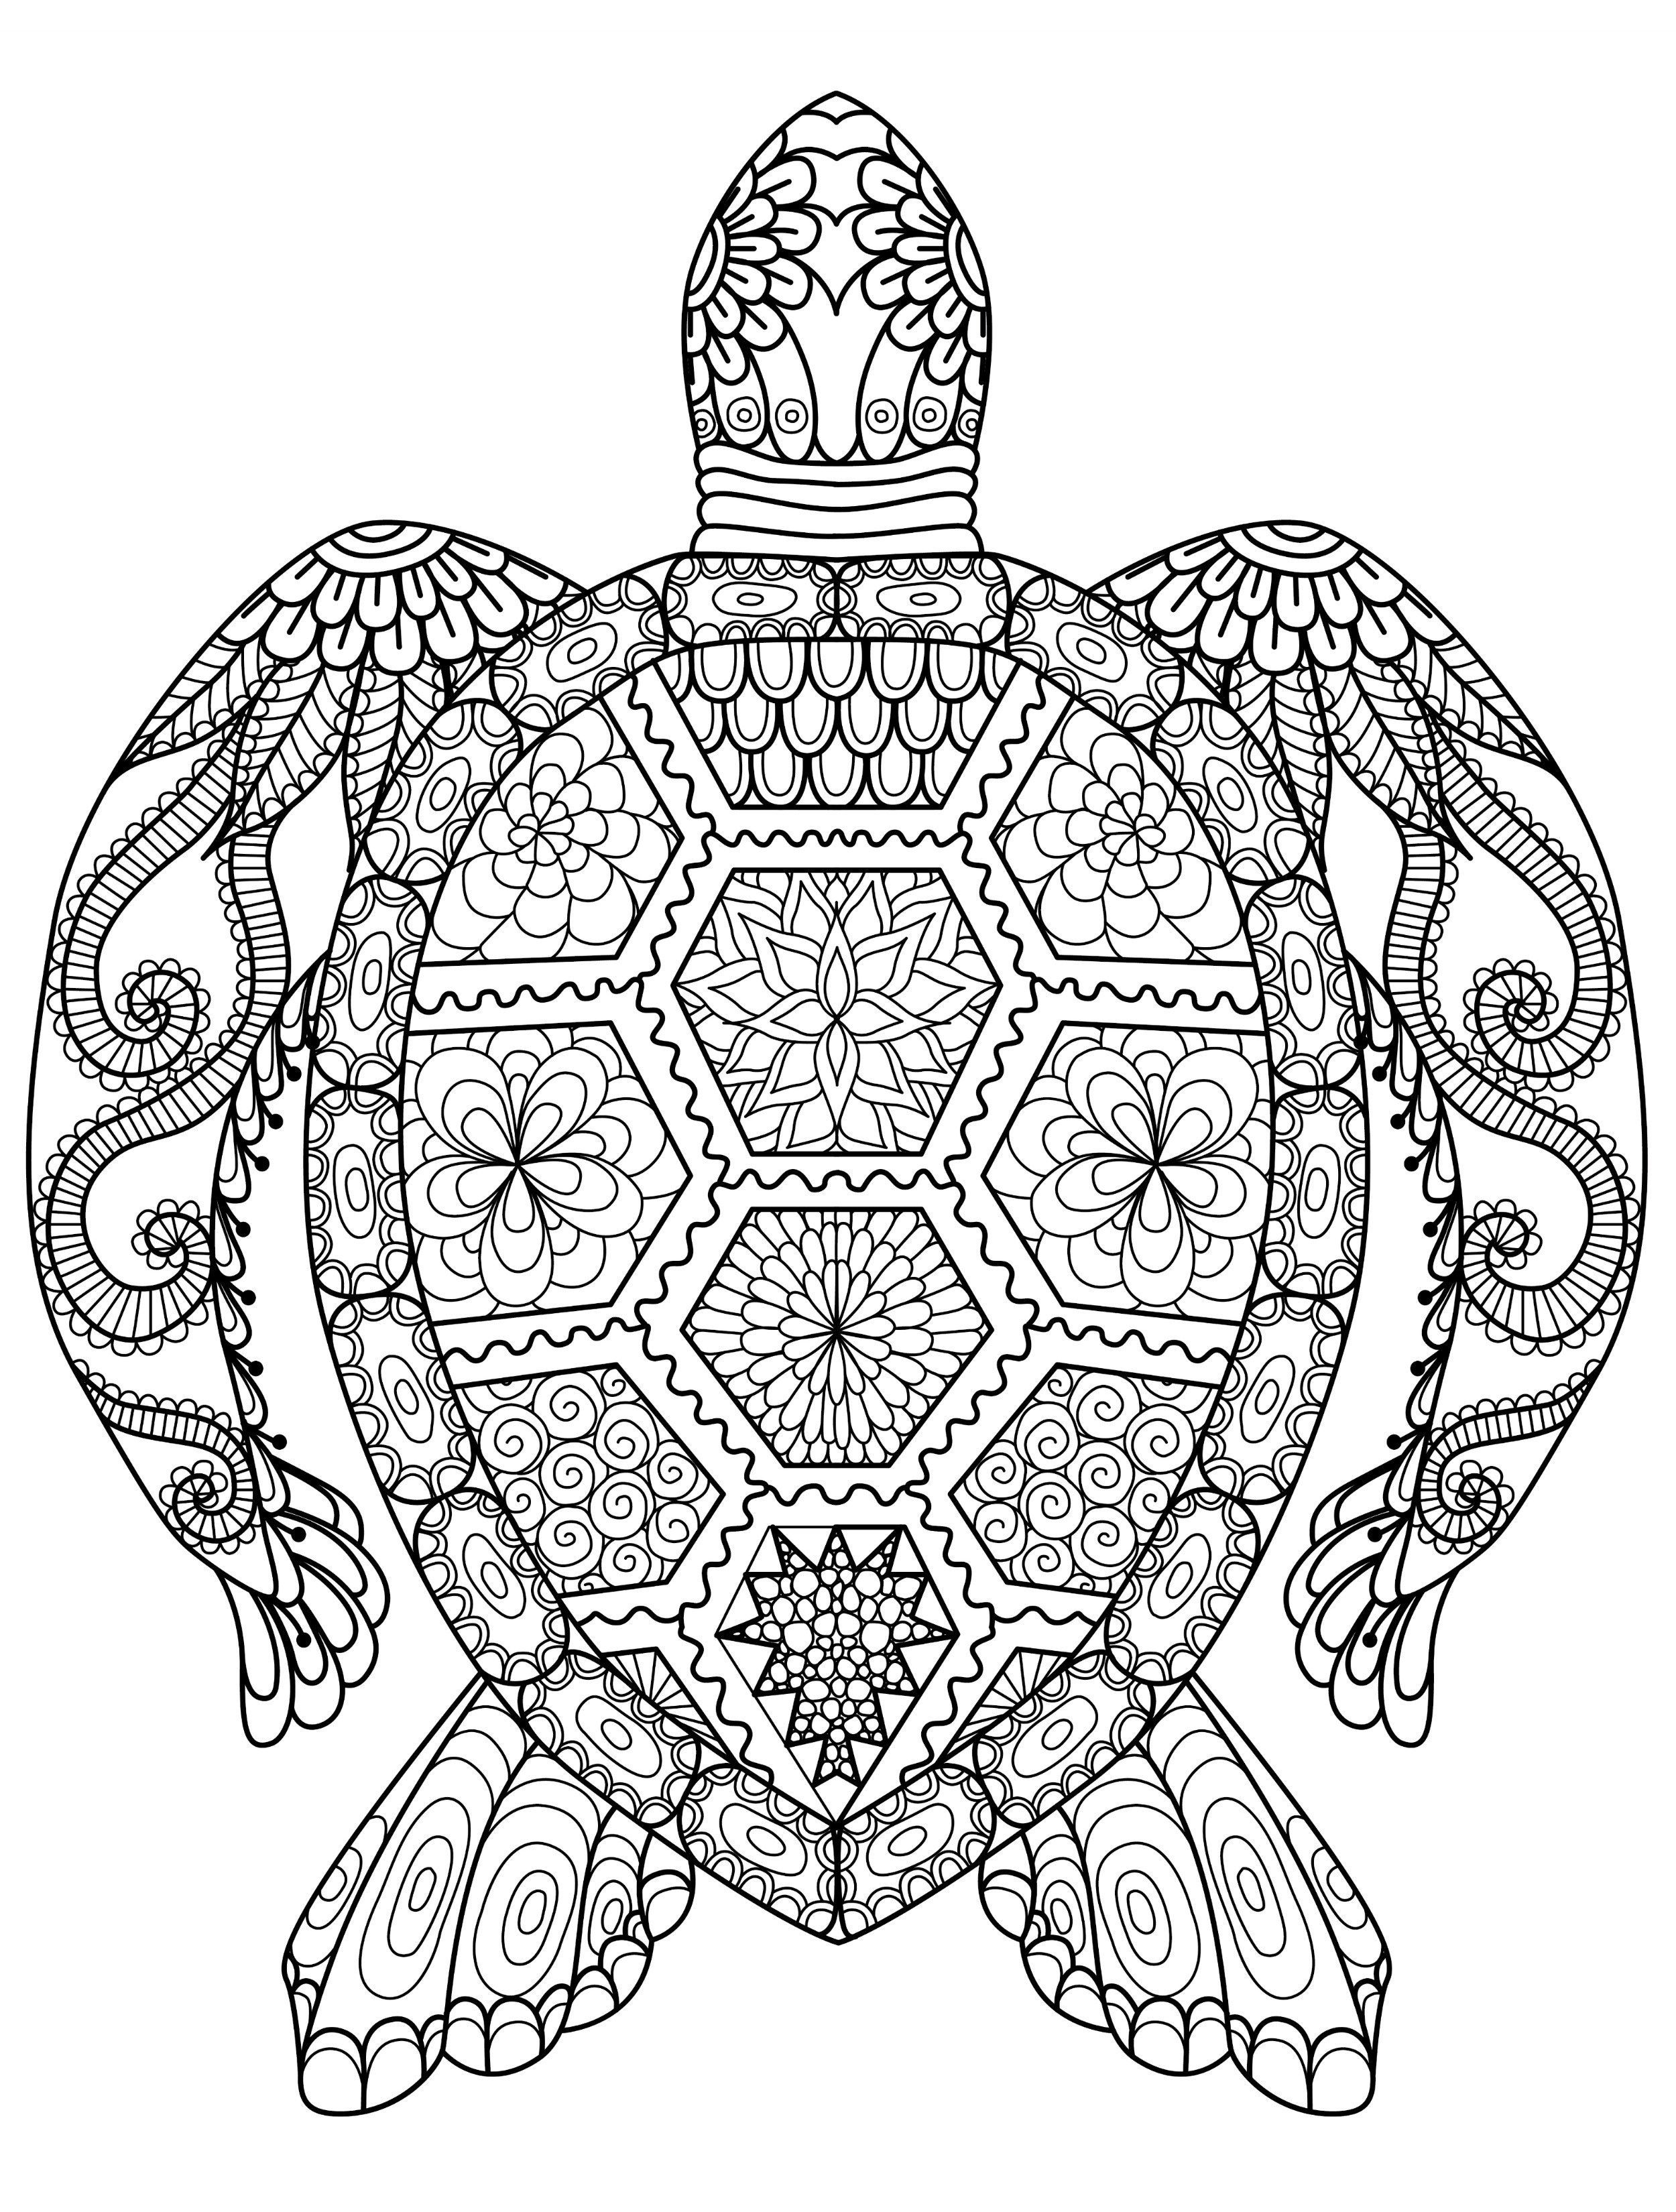 20 Gorgeous Free Printable Adult Coloring Pages … | Adult Coloring - Free Printable Mandala Coloring Pages For Adults